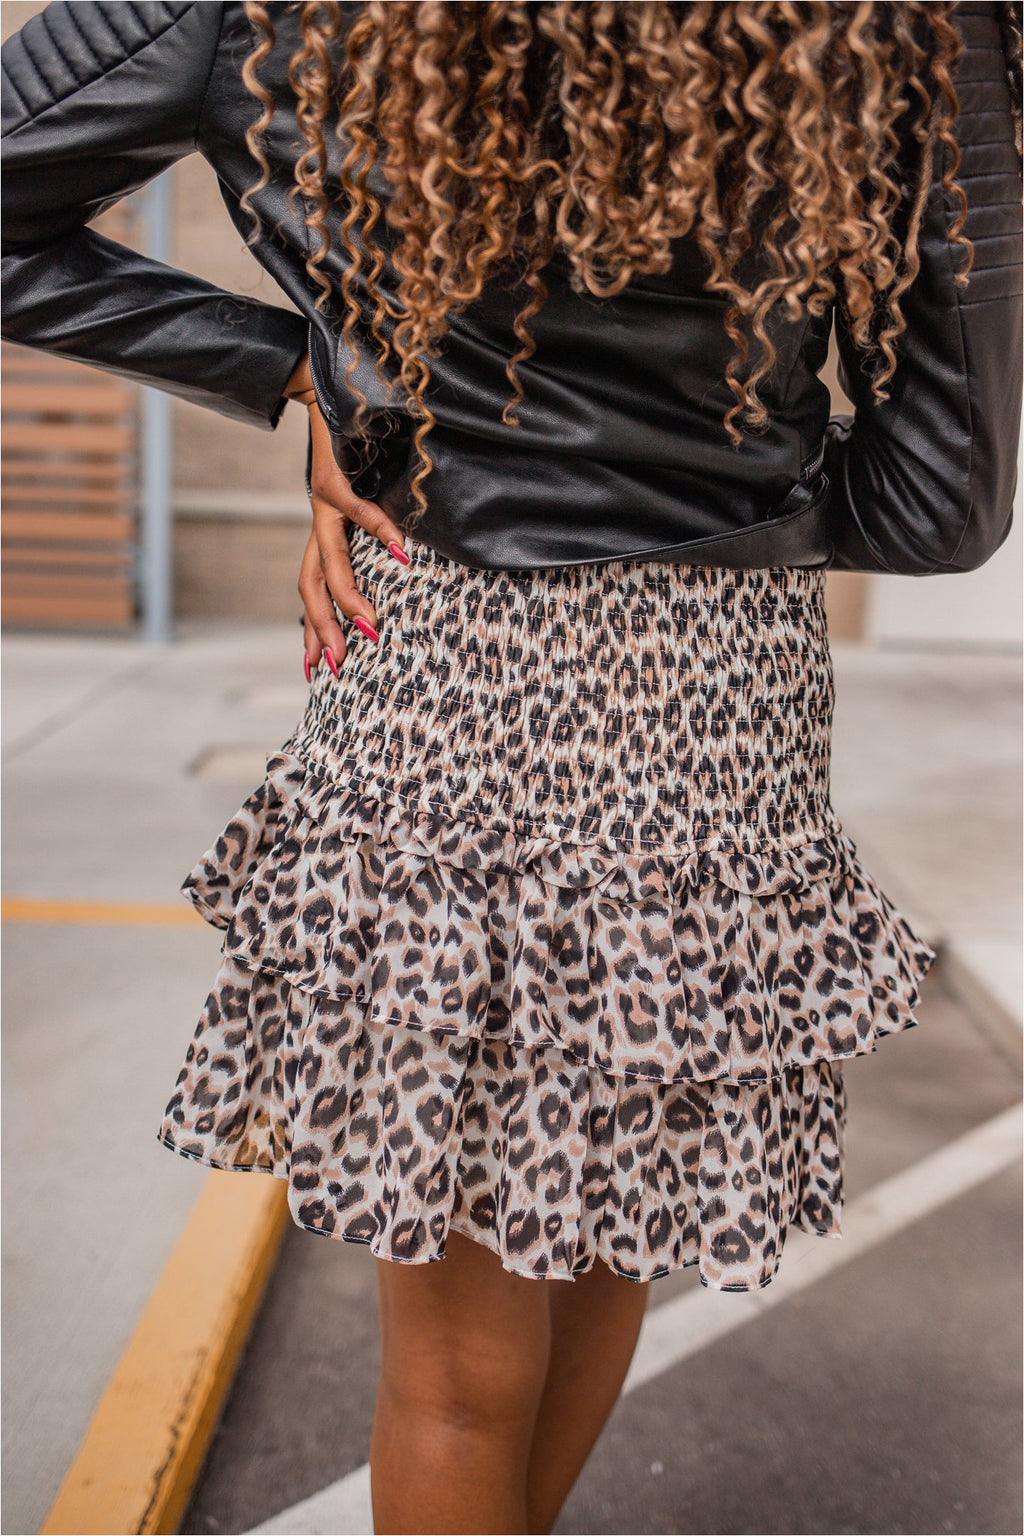 Leopard Smocked Mini Skirt - BluePeppermint Boutique